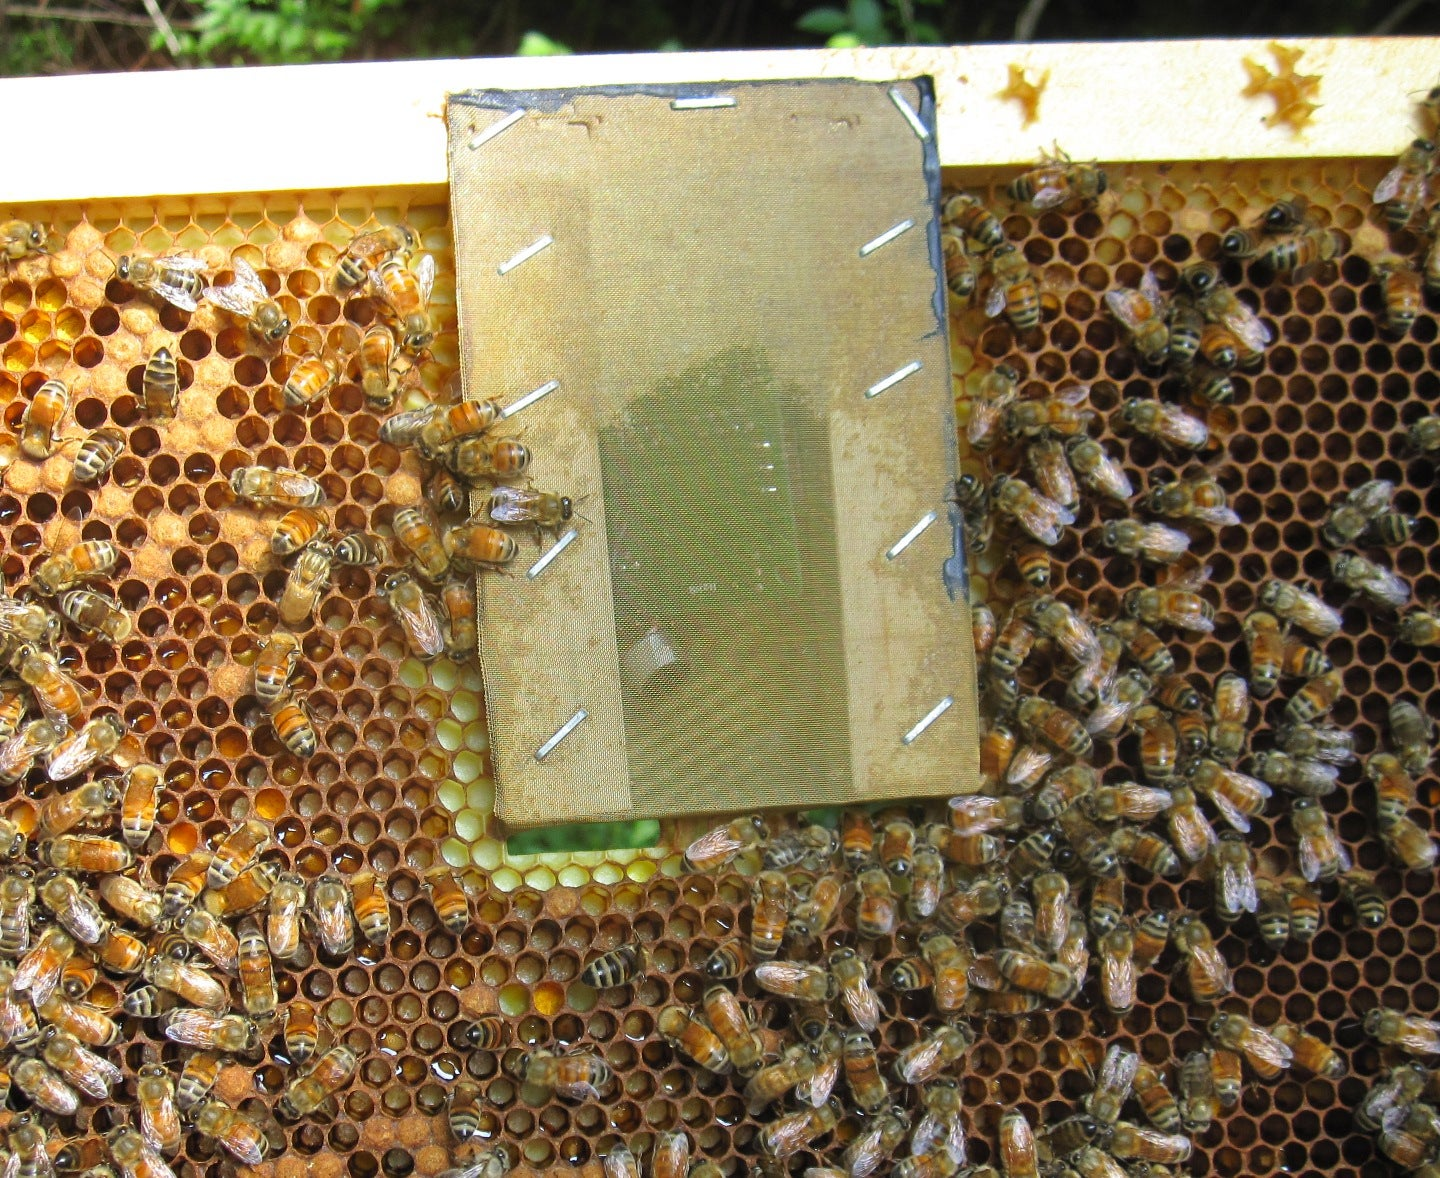 Bee Hackers Help Hives With Unconventional Tools